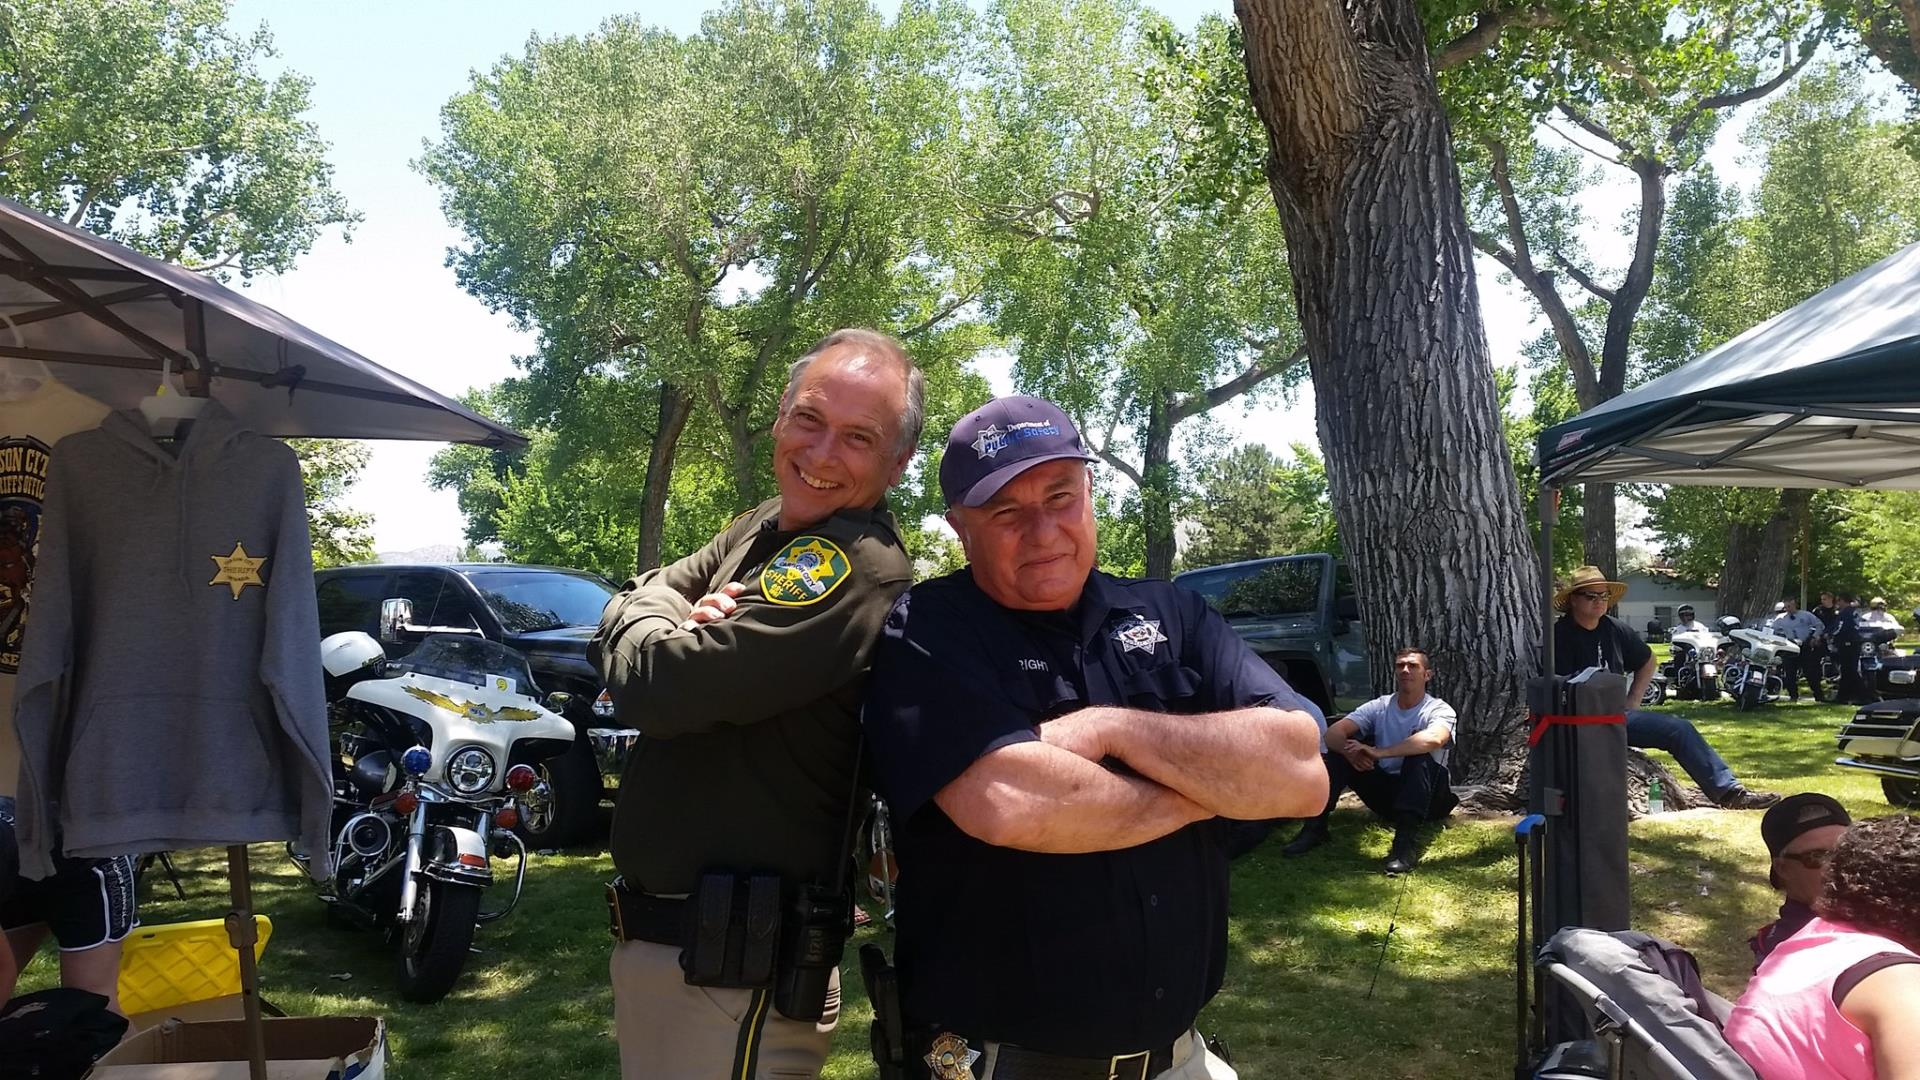 This year's Motor Challenge included competitors from Ontario Provincial Police, Nevada Department of Public Safety and Sheriff's Office Motor Unit.